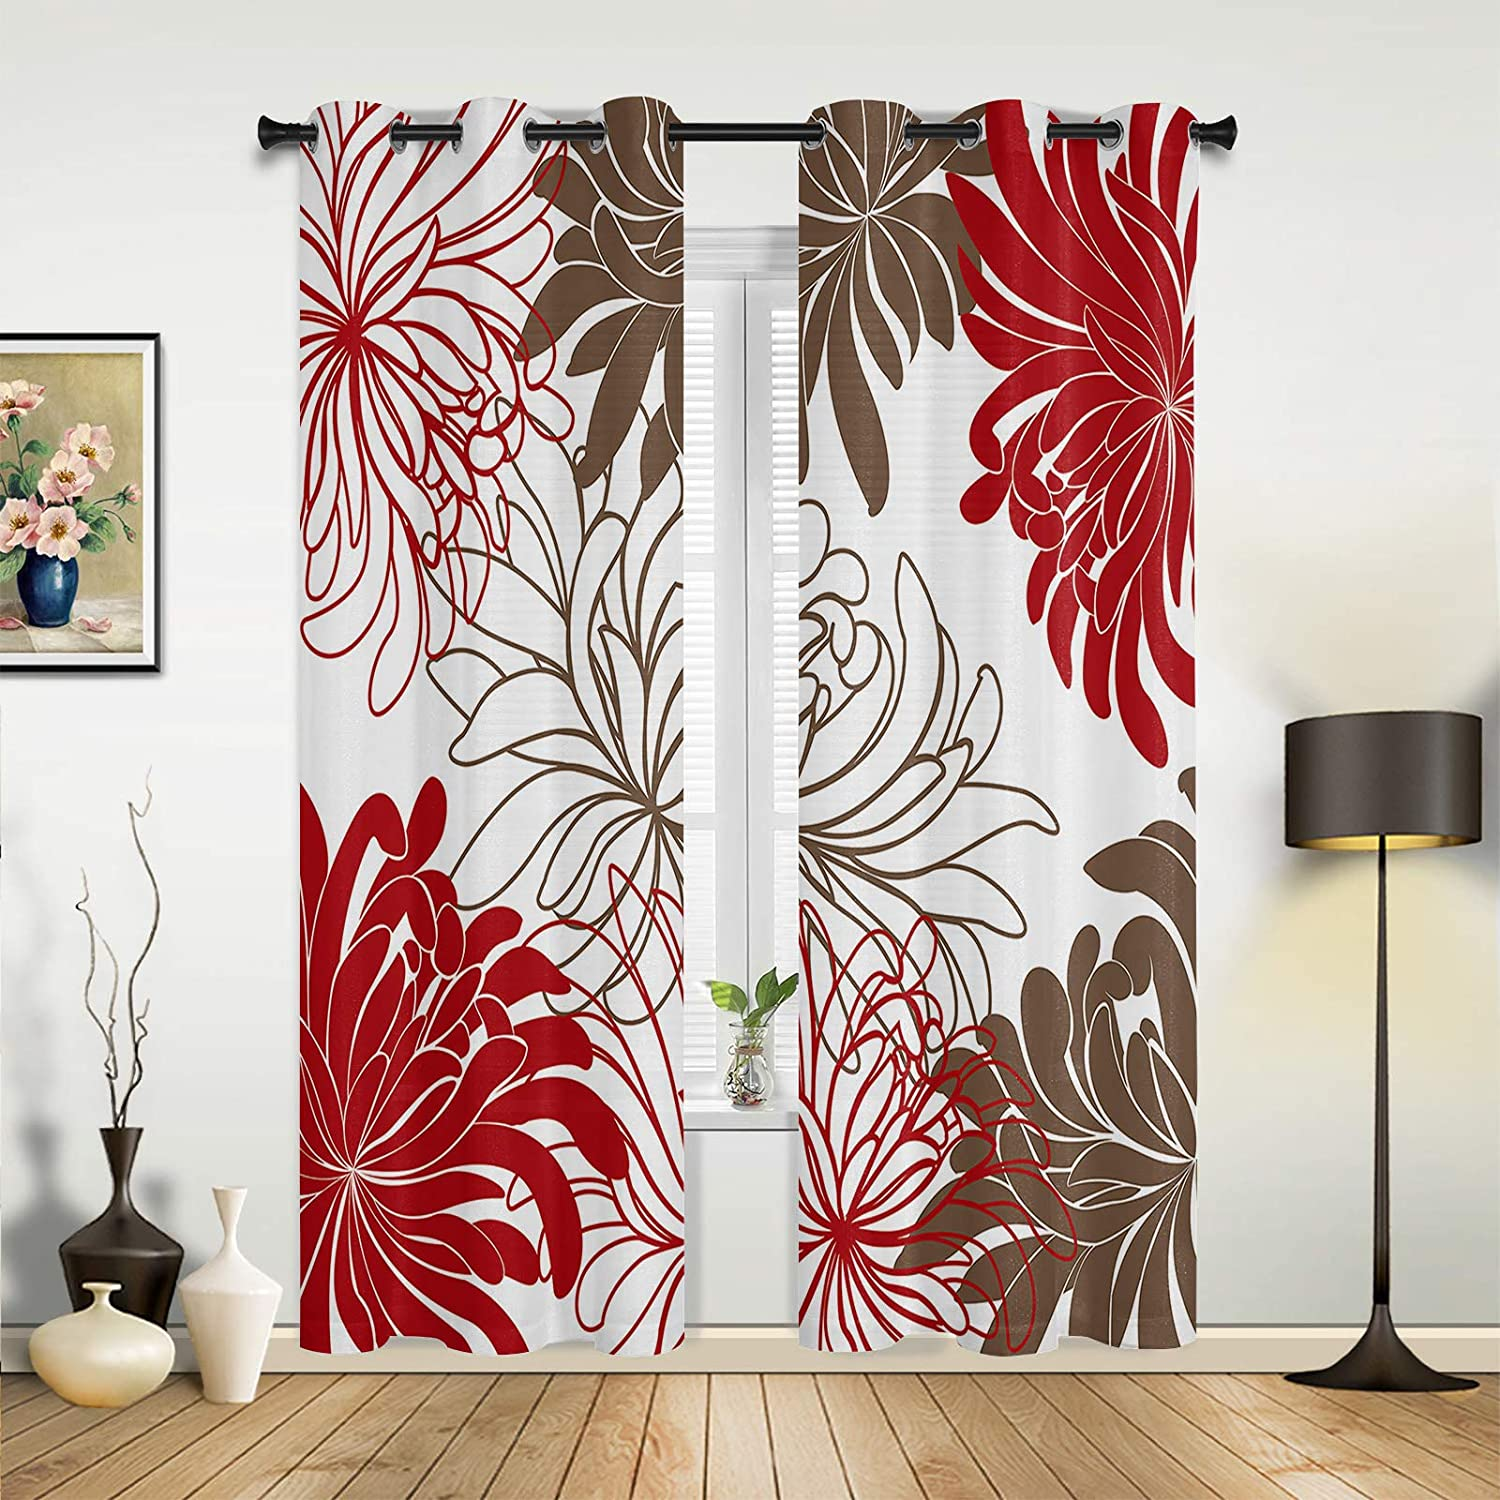 Beauty Decor Max 71% OFF Window Sheer Curtains Minim Living Japan's largest assortment Room Bedroom for